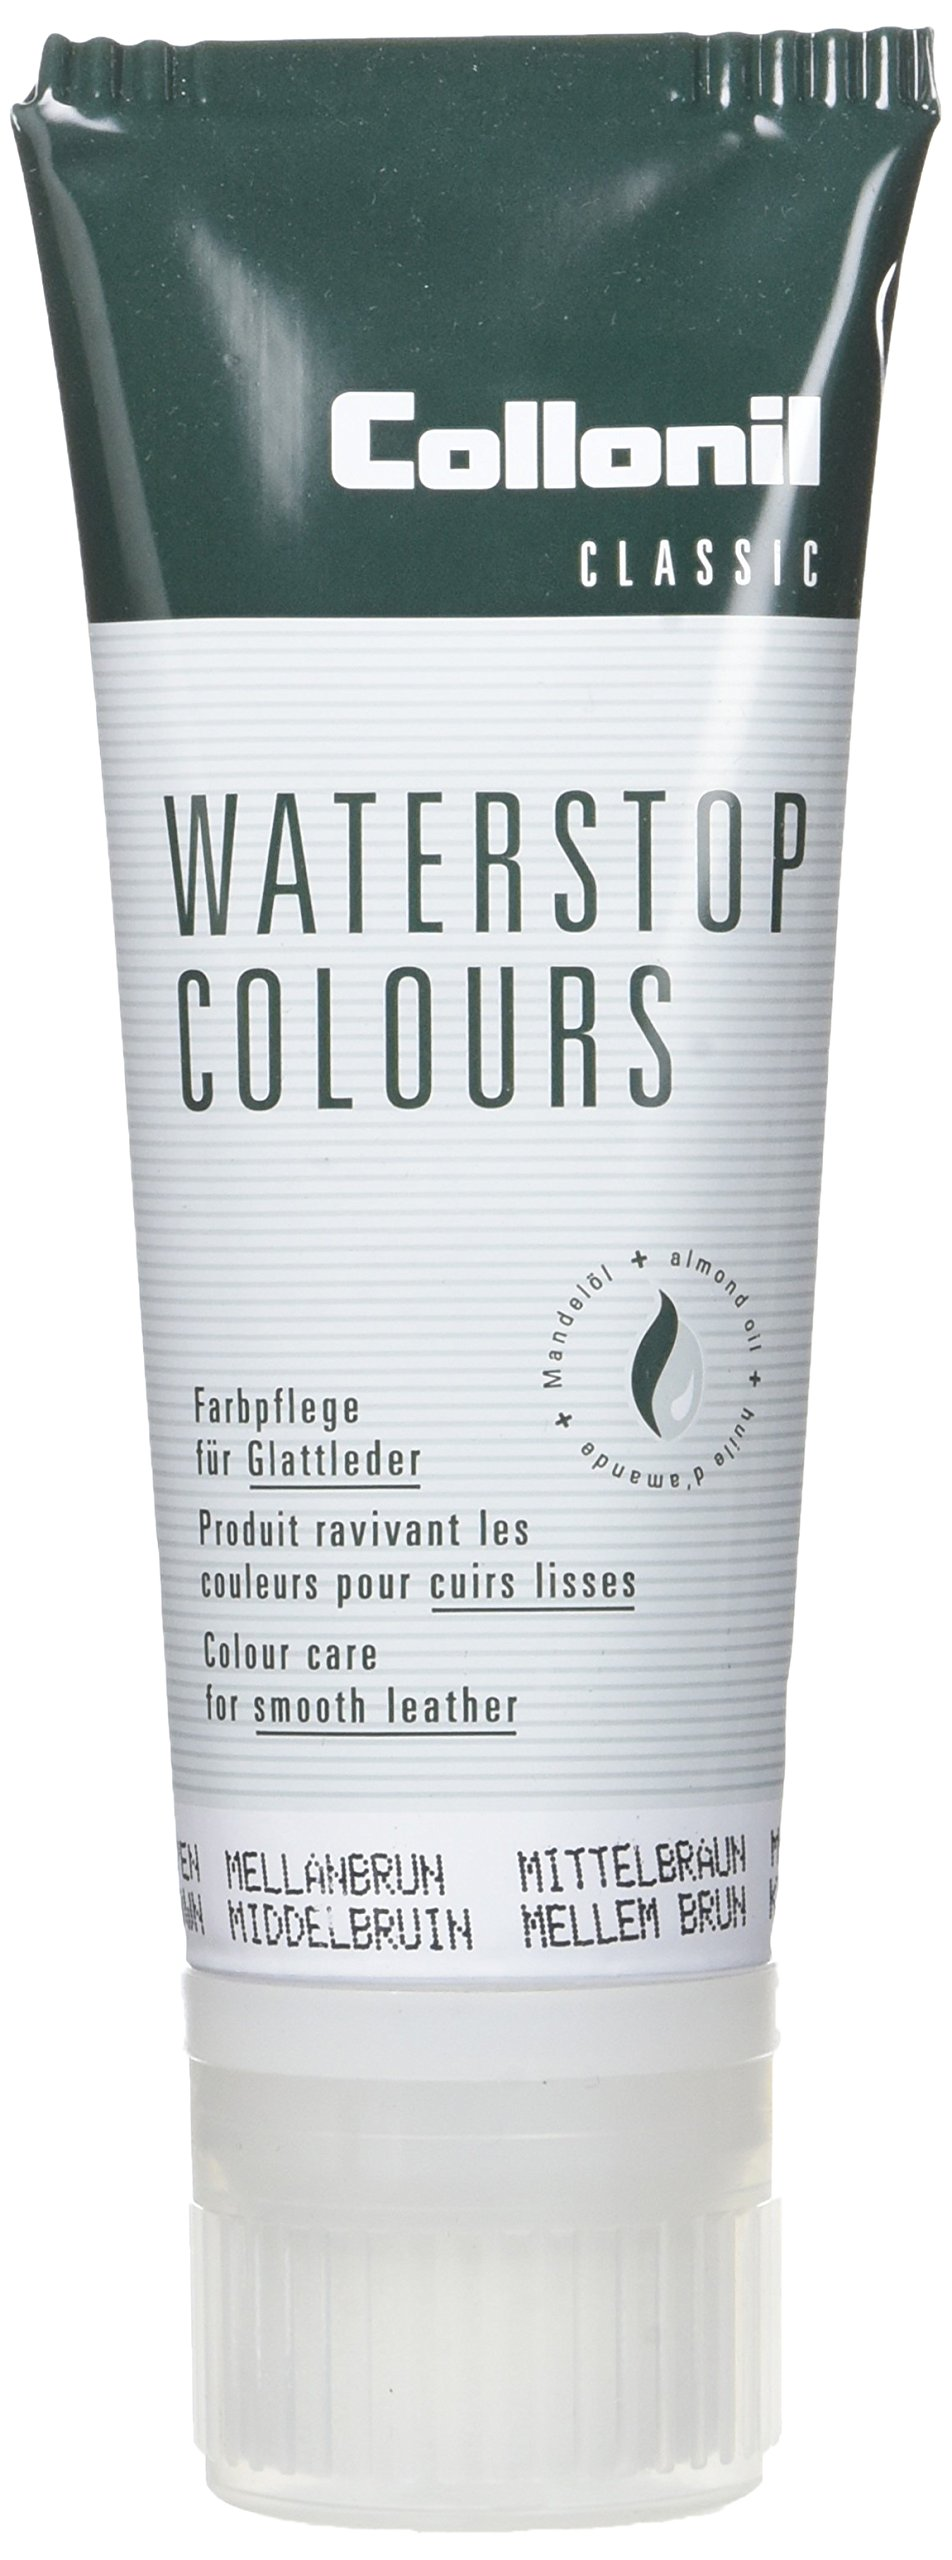 Collonil Waterstop Colours (Medium Brown) by Collonil (Image #1)